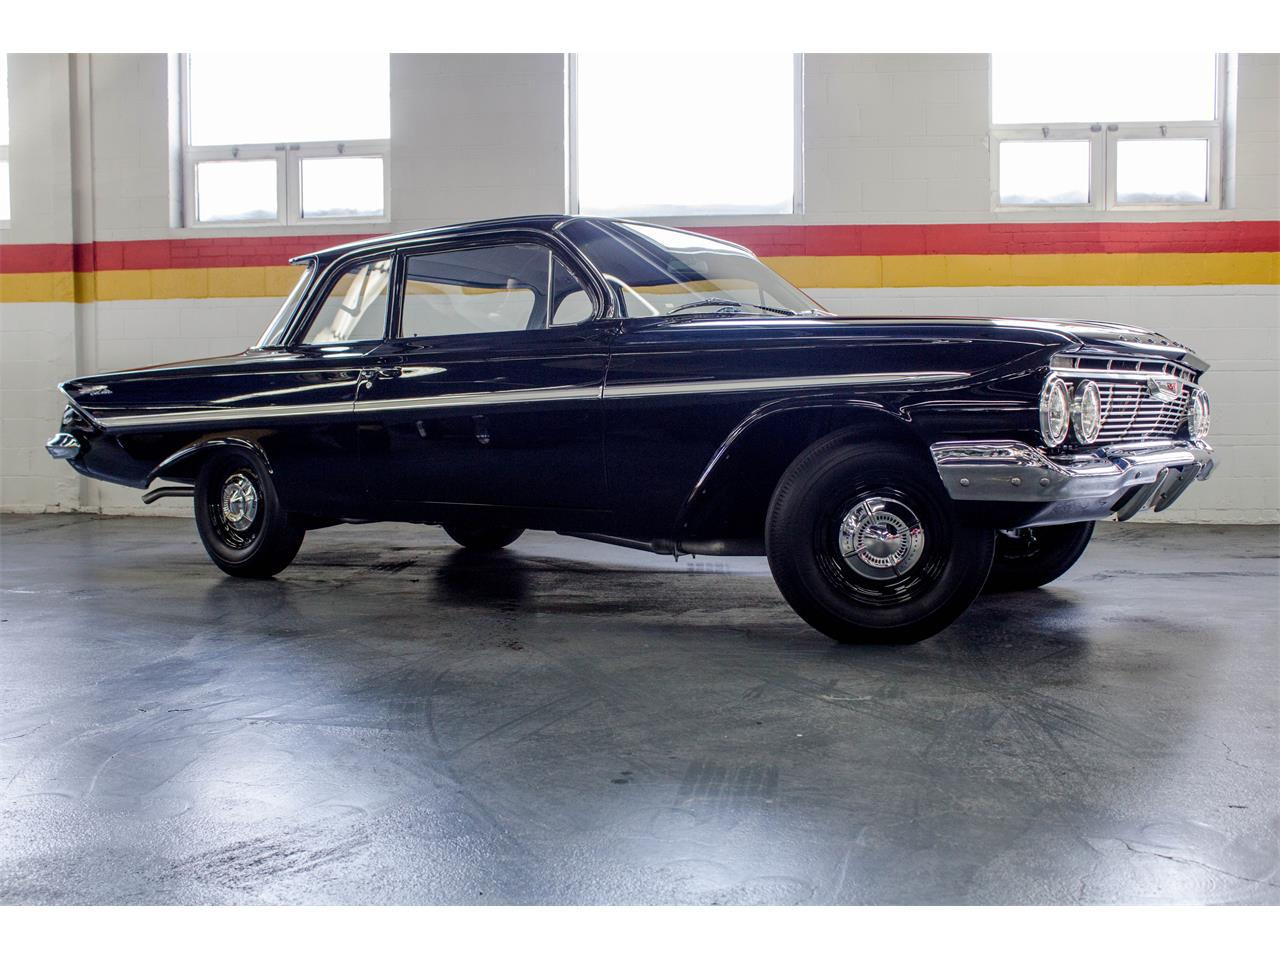 Large Picture of Classic '61 Bel Air located in Quebec - $72,500.00 Offered by John Scotti Classic Cars - M35A